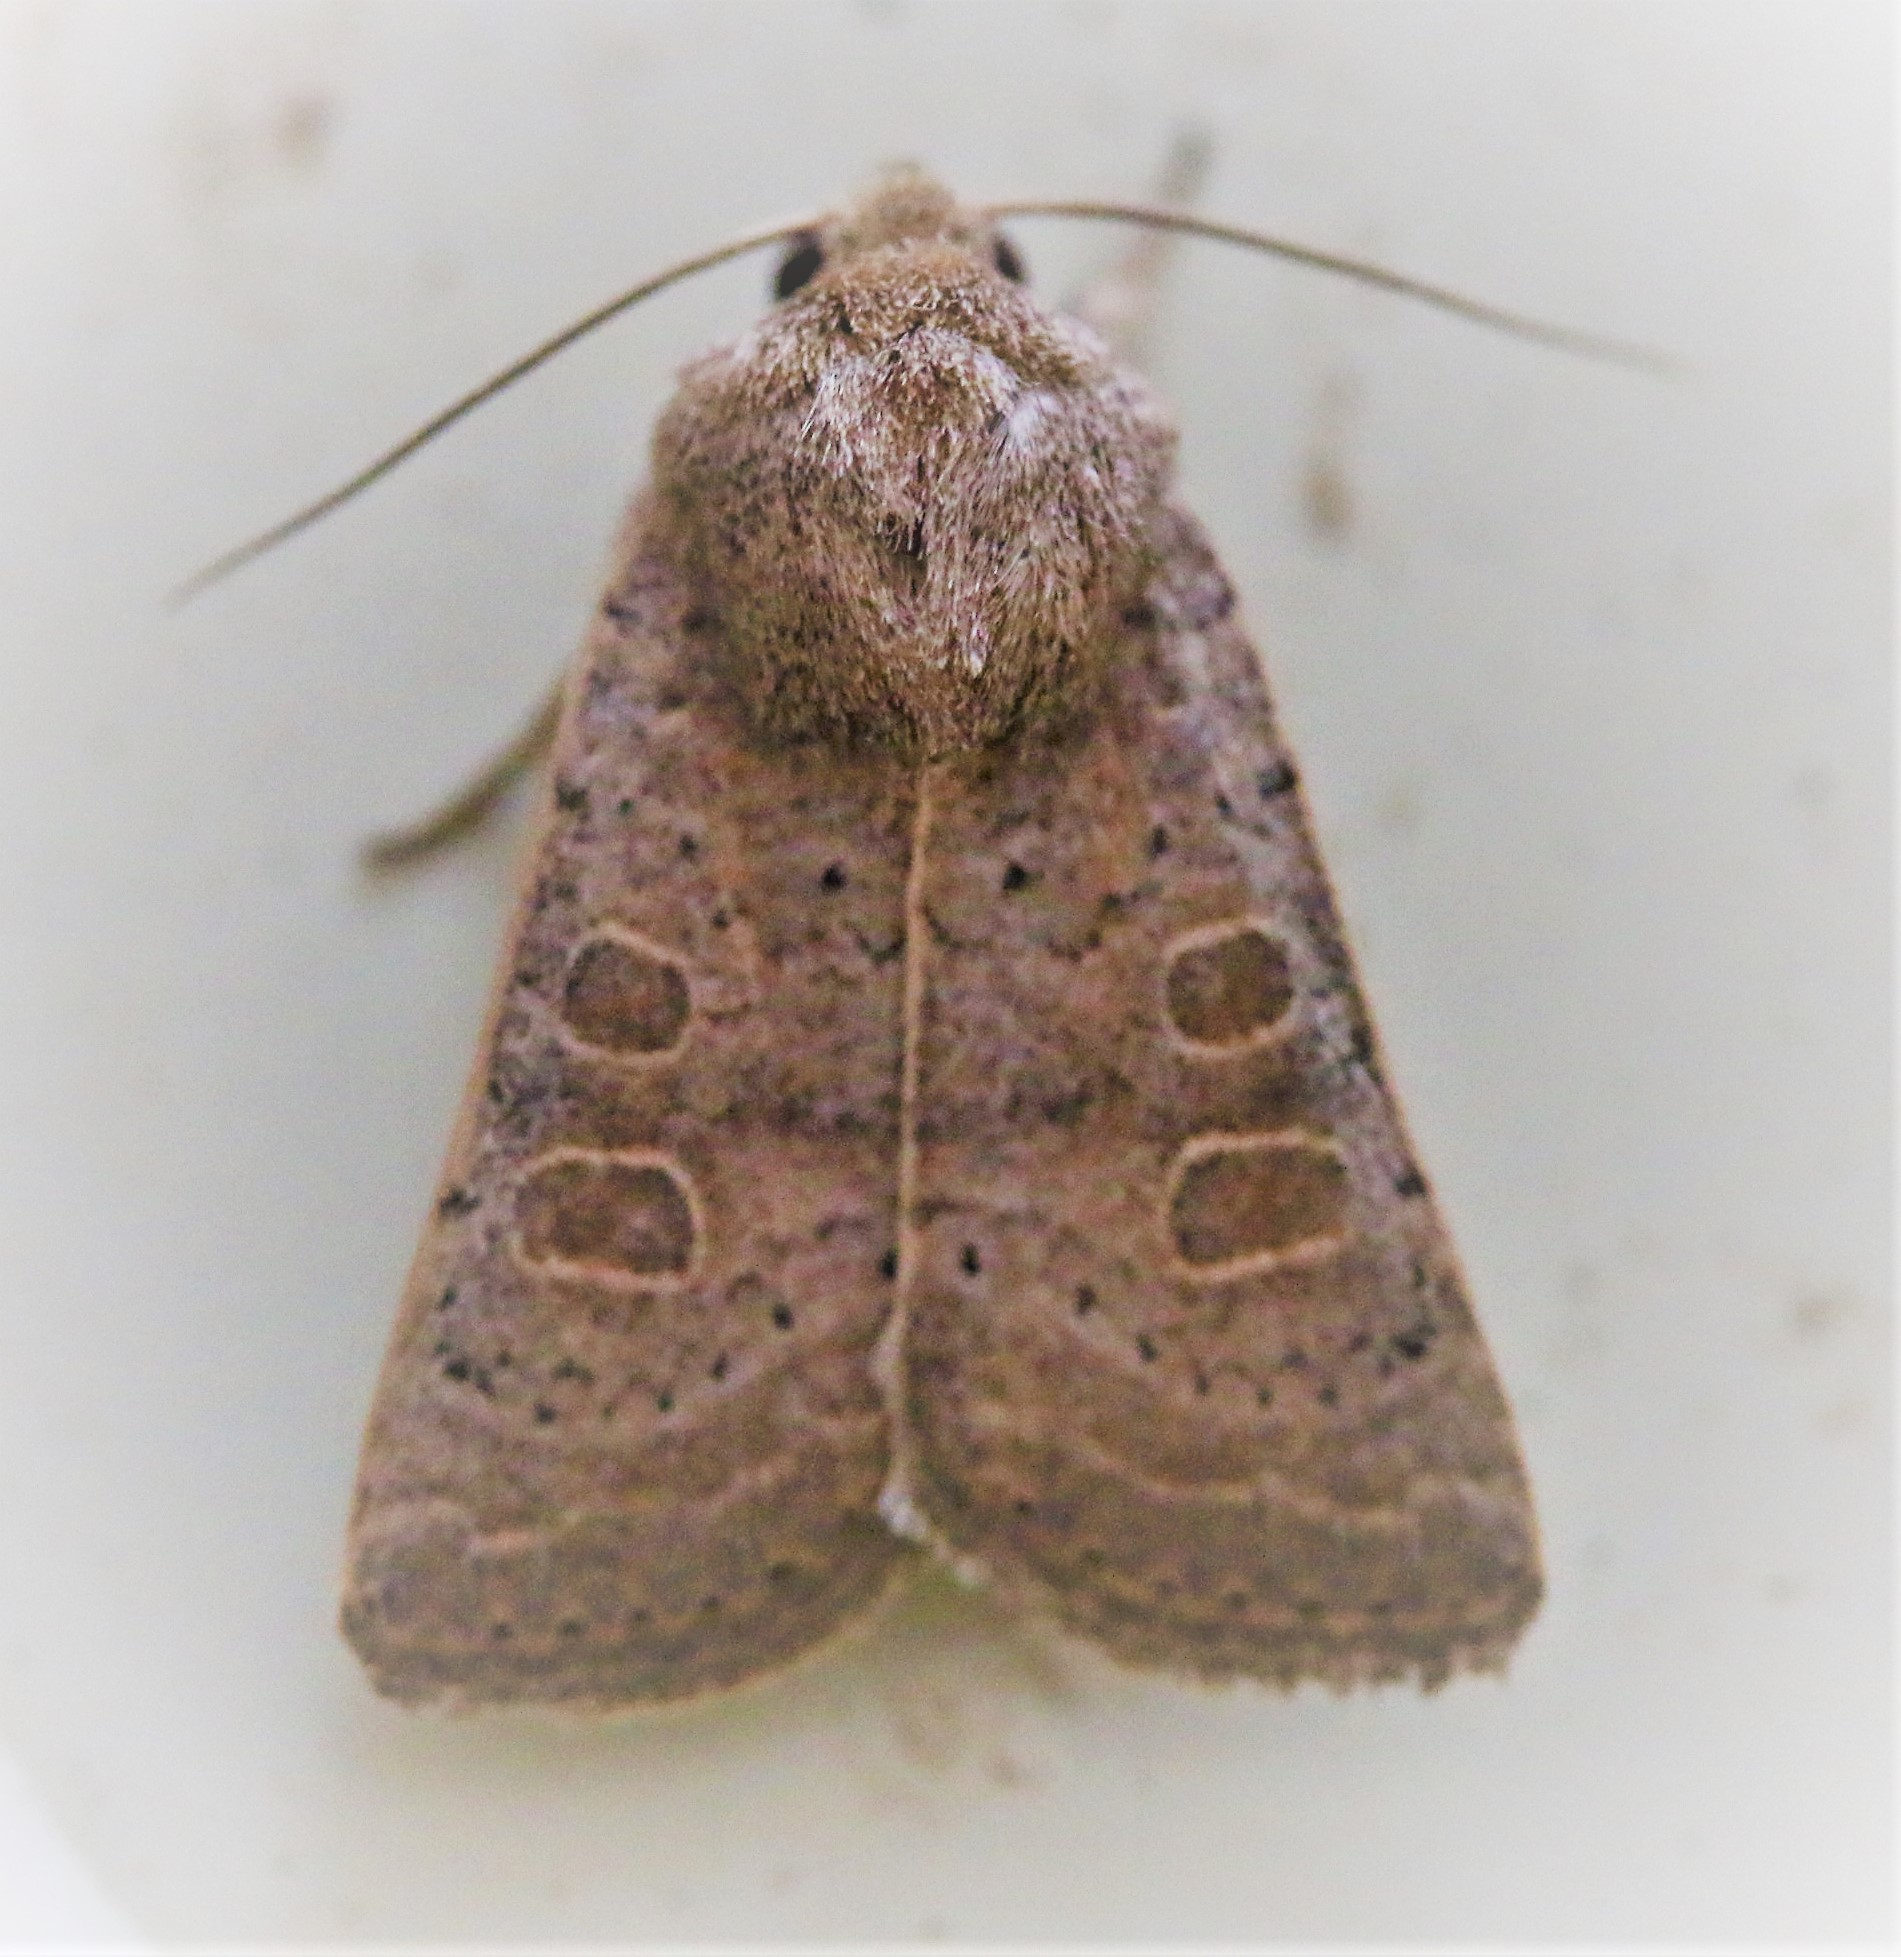 Hoplodrina octogenaria. Uncertain.